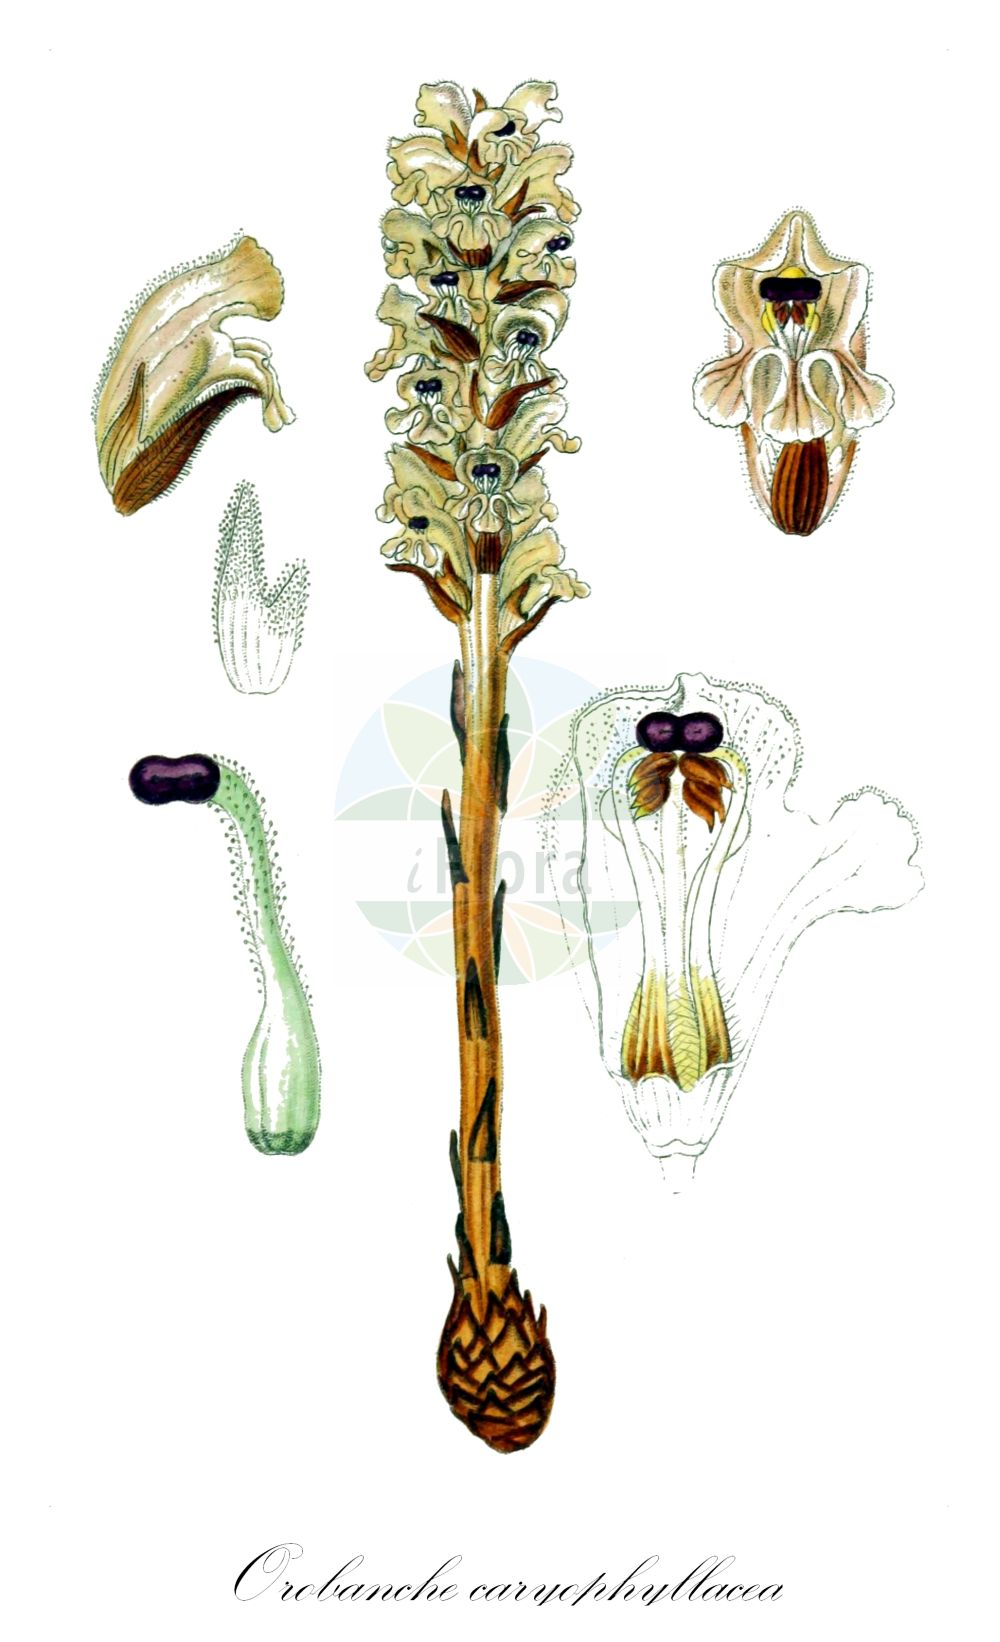 Historische Abbildung von Orobanche caryophyllacea (Nelken-Sommerwurz - Bedstraw Broomrape). Das Bild zeigt Blatt, Bluete, Frucht und Same. ---- Historical Drawing of Orobanche caryophyllacea (Nelken-Sommerwurz - Bedstraw Broomrape).The image is showing leaf, flower, fruit and seed.(Orobanche caryophyllacea,Nelken-Sommerwurz,Bedstraw Broomrape,Orobanche buhsei,Orobanche clausonis,Orobanche galii,Orobanche hesperina,Orobanche vulgaris,Gemeine Sommerwurz,Clove-scented Broomrape,Orobanche,Sommerwurz,Broomrape,Orobanchaceae,Sommerwurzgewaechse,Broomrape family,Blatt,Bluete,Frucht,Same,leaf,flower,fruit,seed,Sturm (1796f))